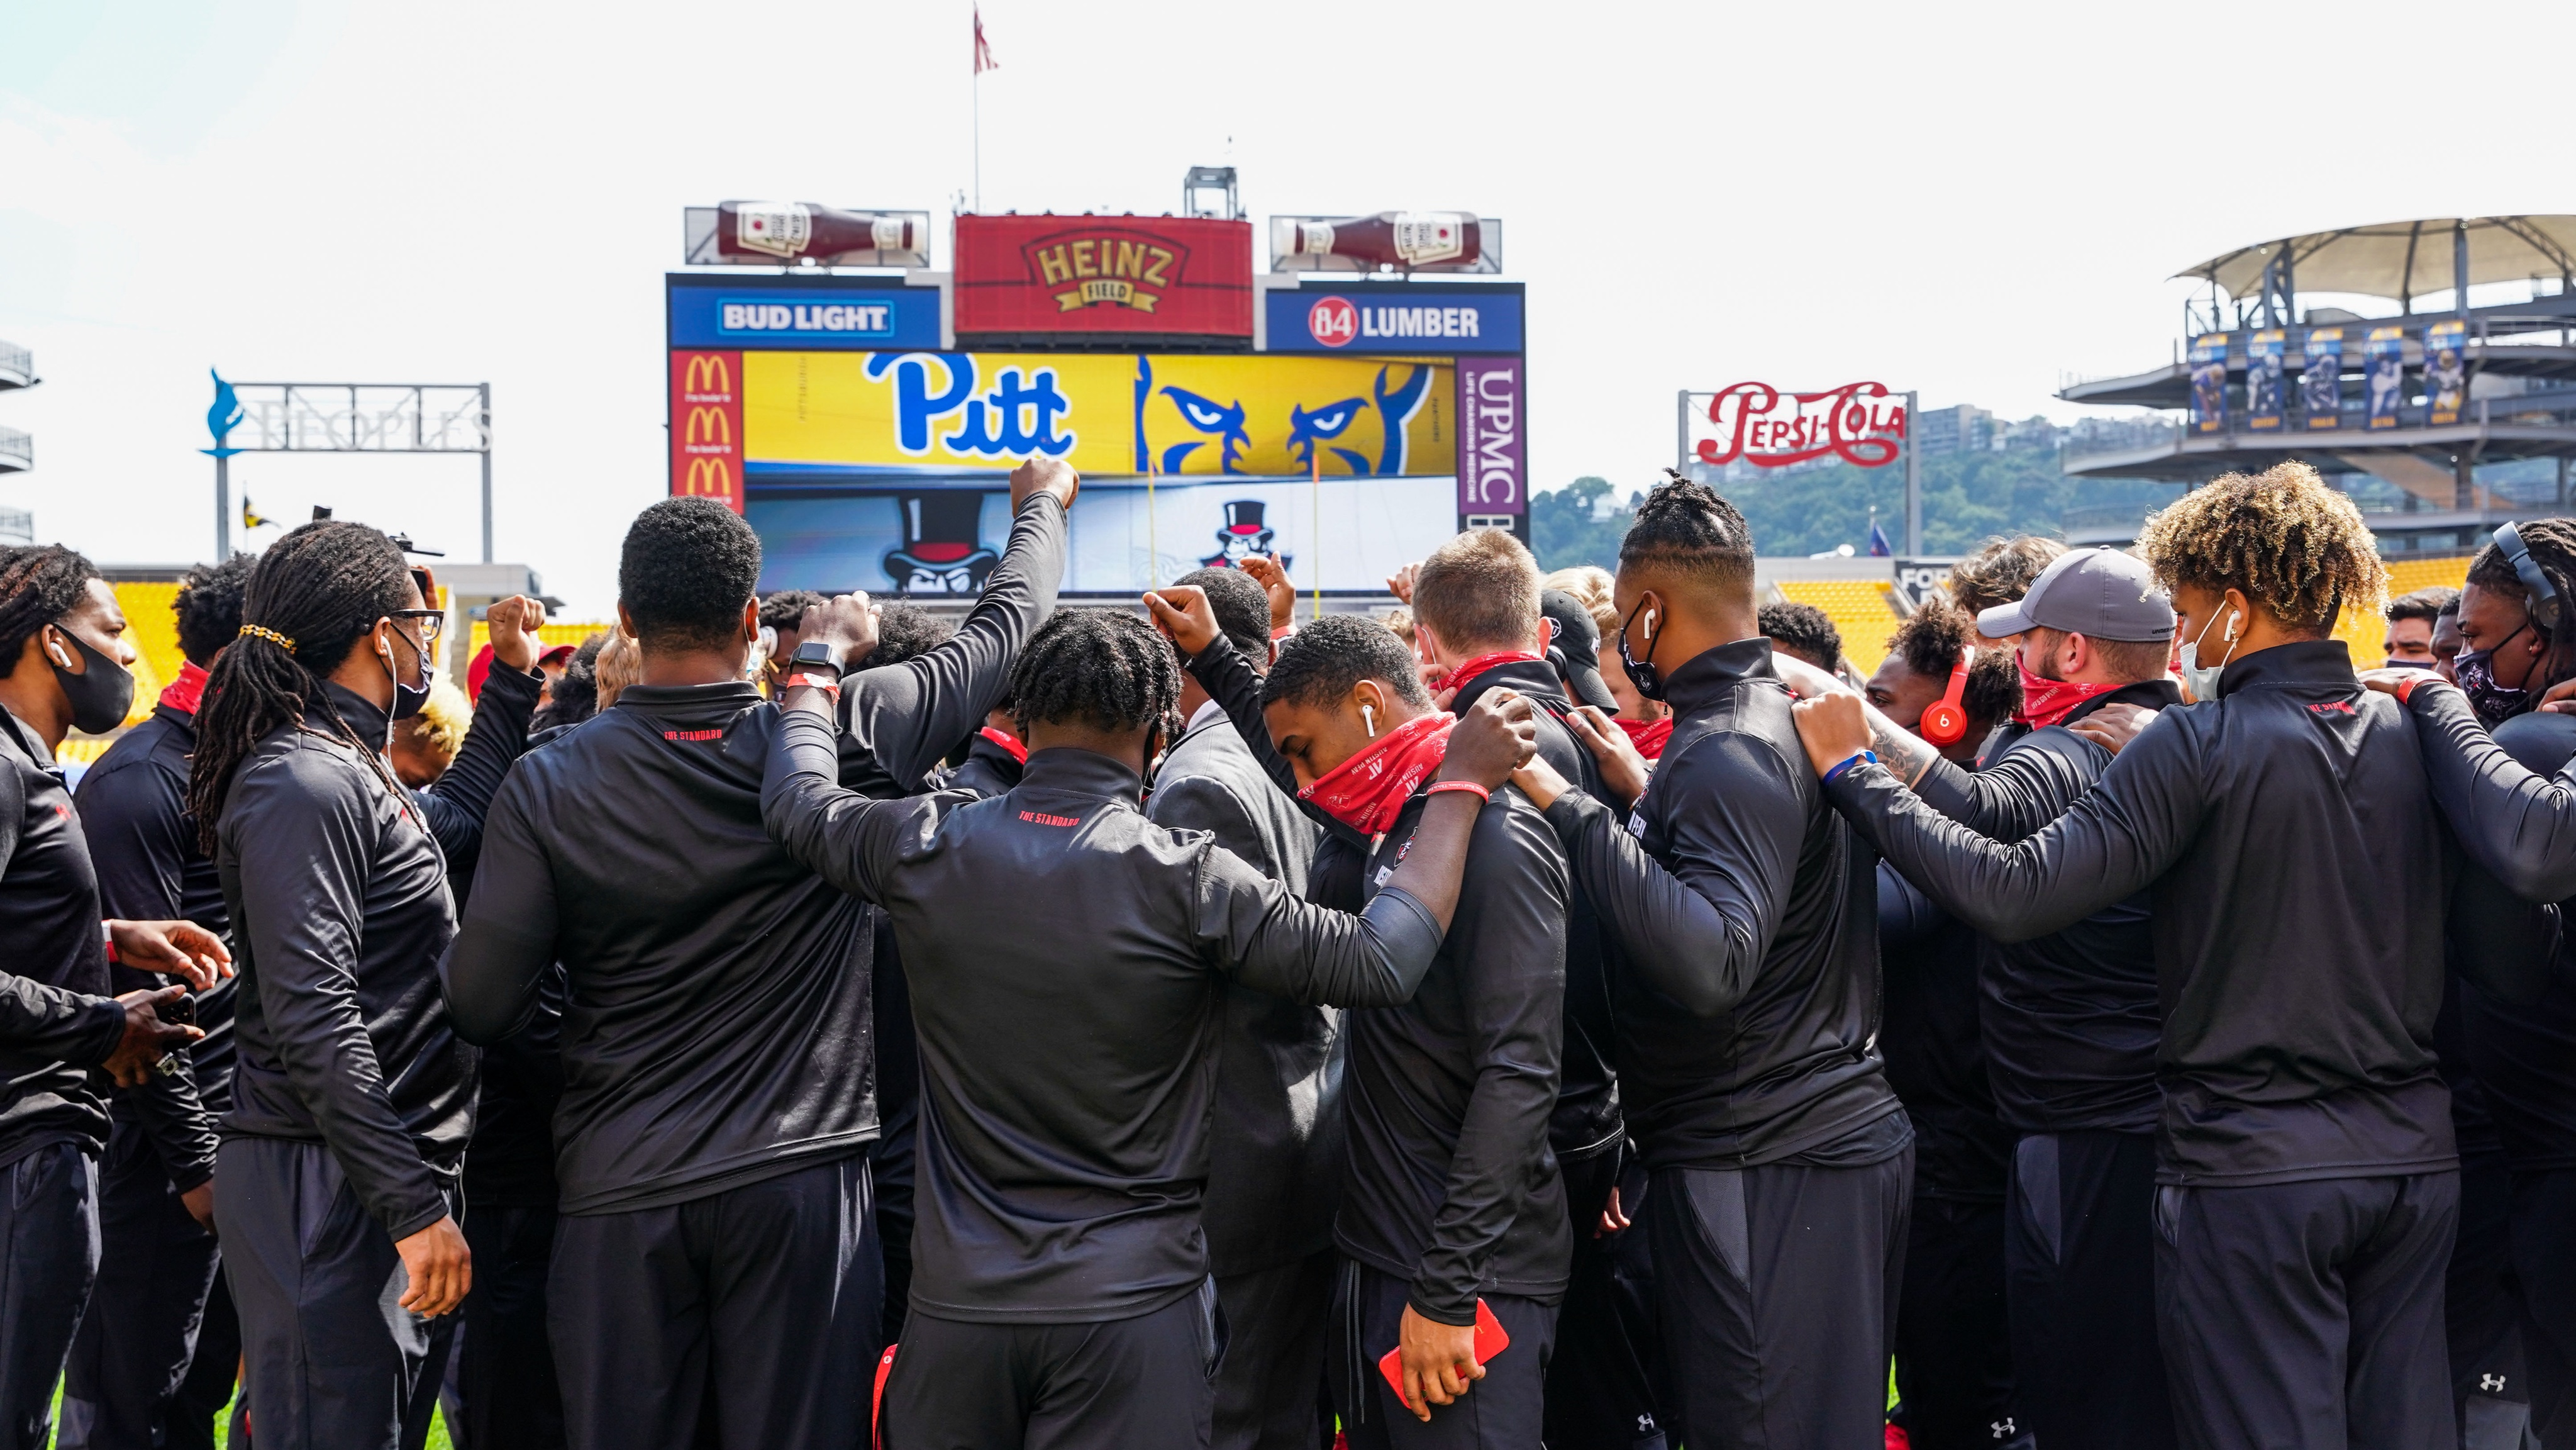 The APSU football team was defeated by the University of Pittsburgh at Heinz Field on Sept. 12. The final score was 55-0   APSU SPORTS INFORMATION